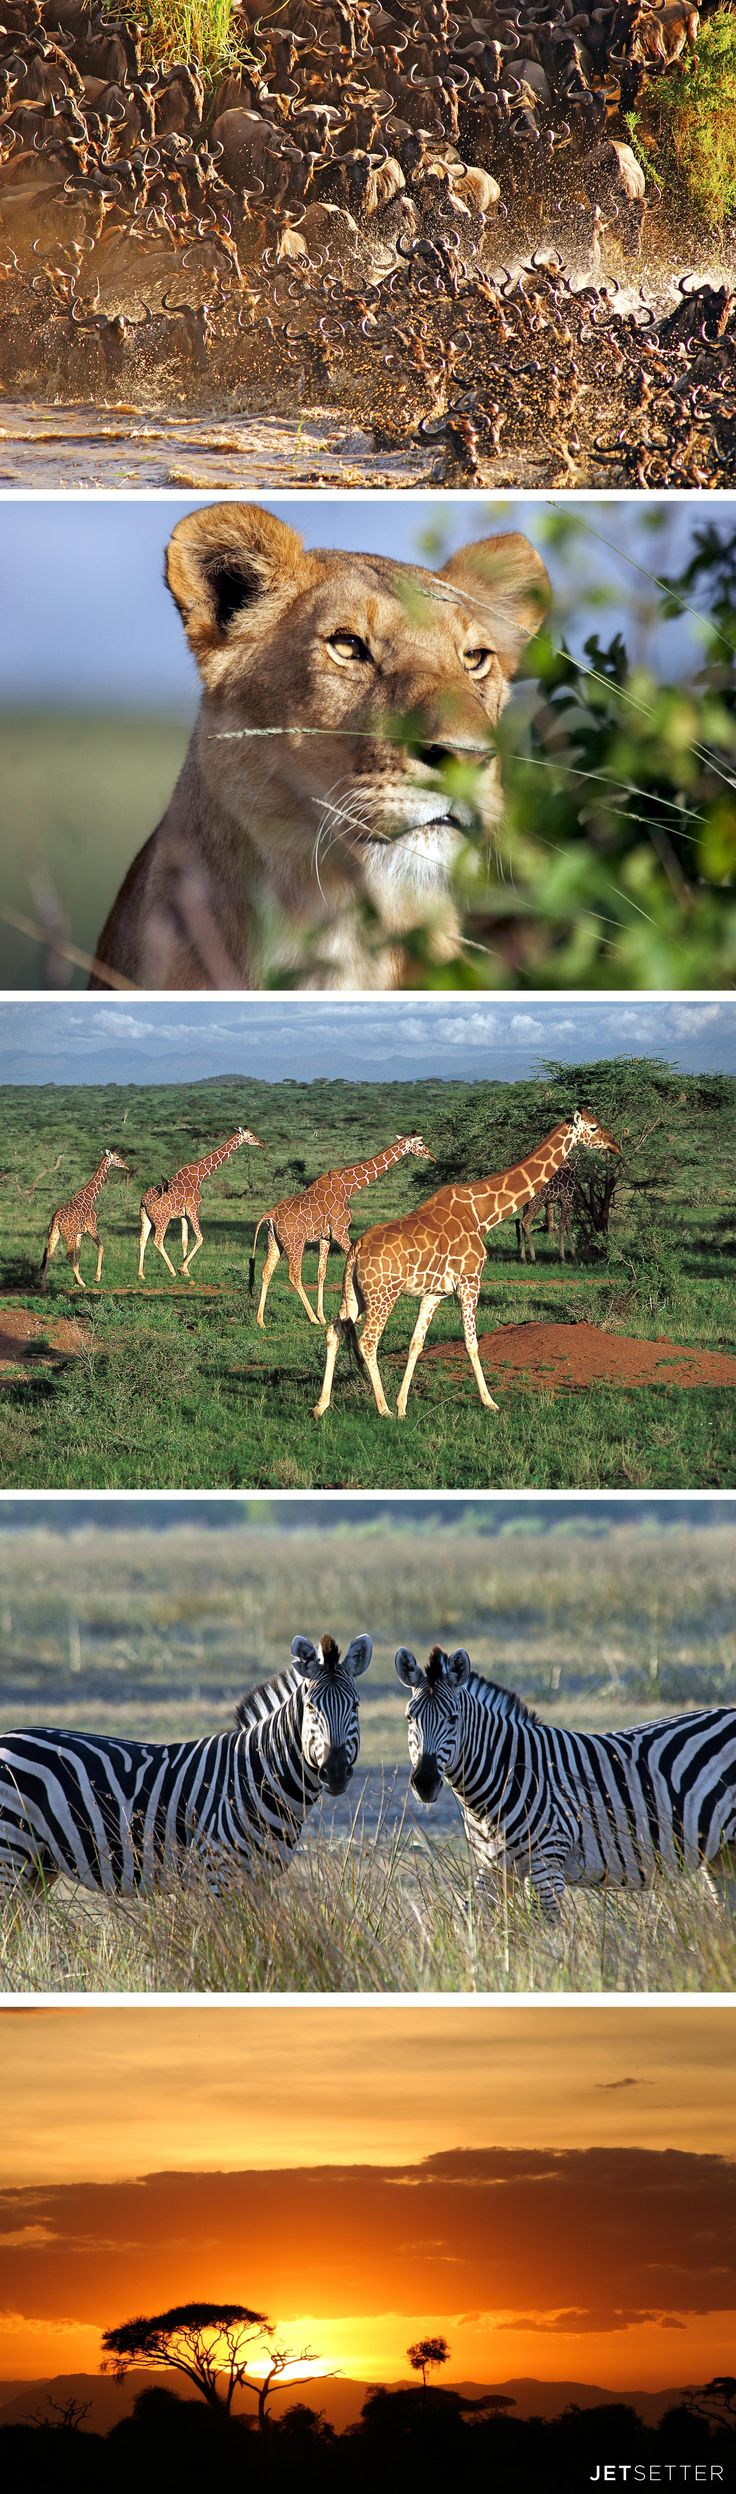 Must visit this amazing continent!: Animal Pictures, Kenya Wildlife, Wild Things, Africans Safari, Travels Placesdoitnow, The Great Migration, Animal Sculptures, My Buckets Lists